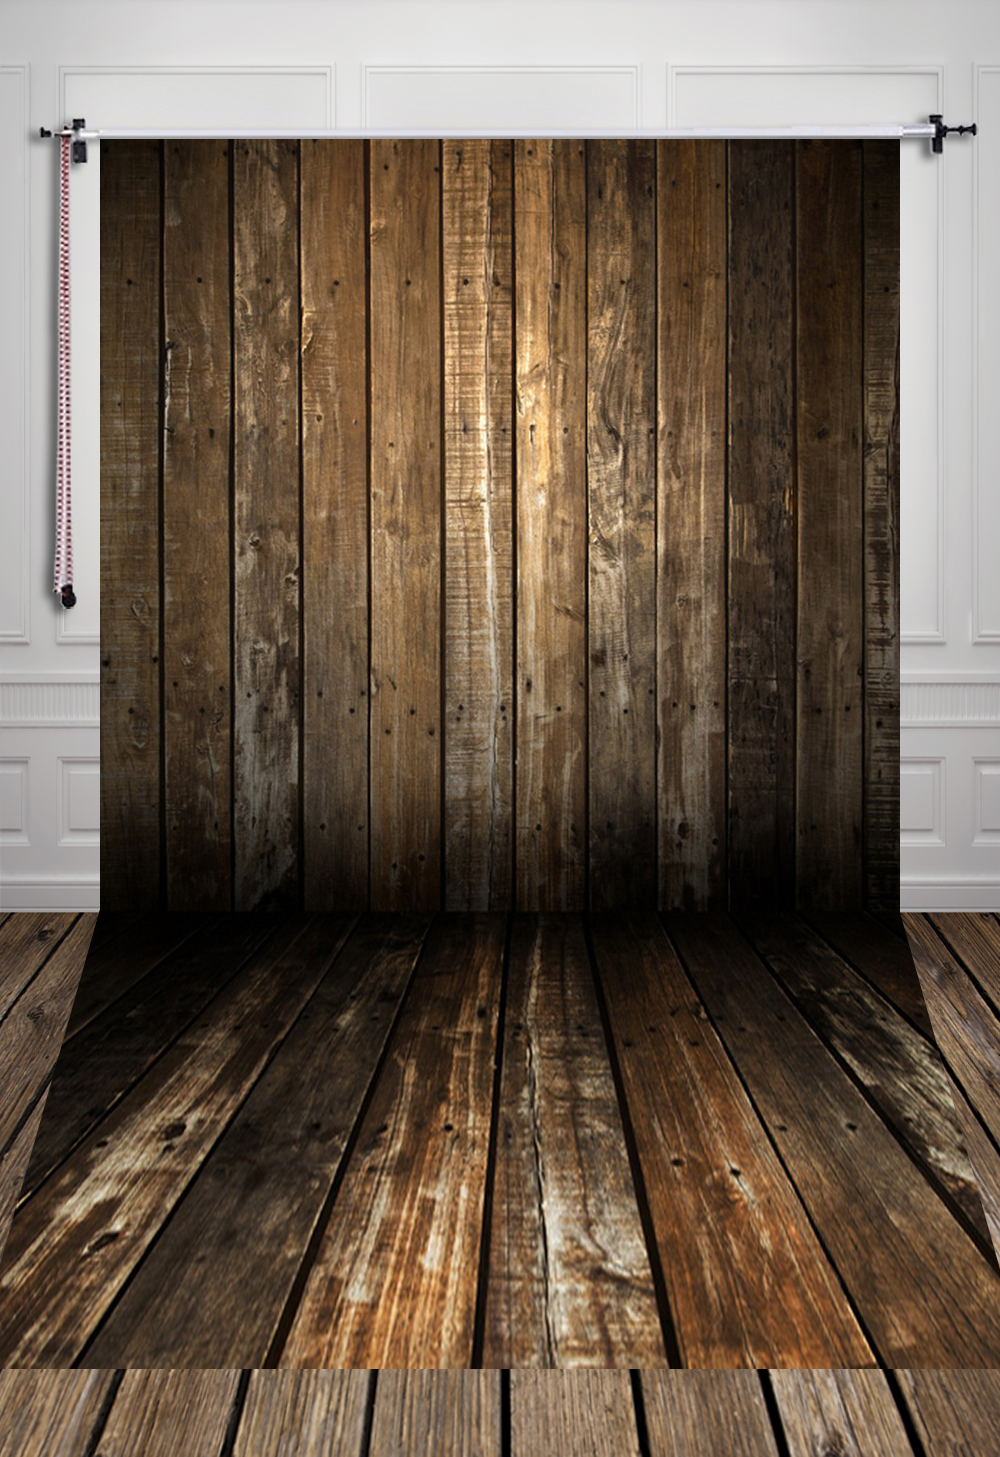 4x6ft (1.25x2m) photo studio wood floor print photography backdrop Art fabric newborn pet photography props background D-925 10ft 20ft romantic wedding backdrop f 894 fabric background idea wood floor digital photography backdrop for picture taking